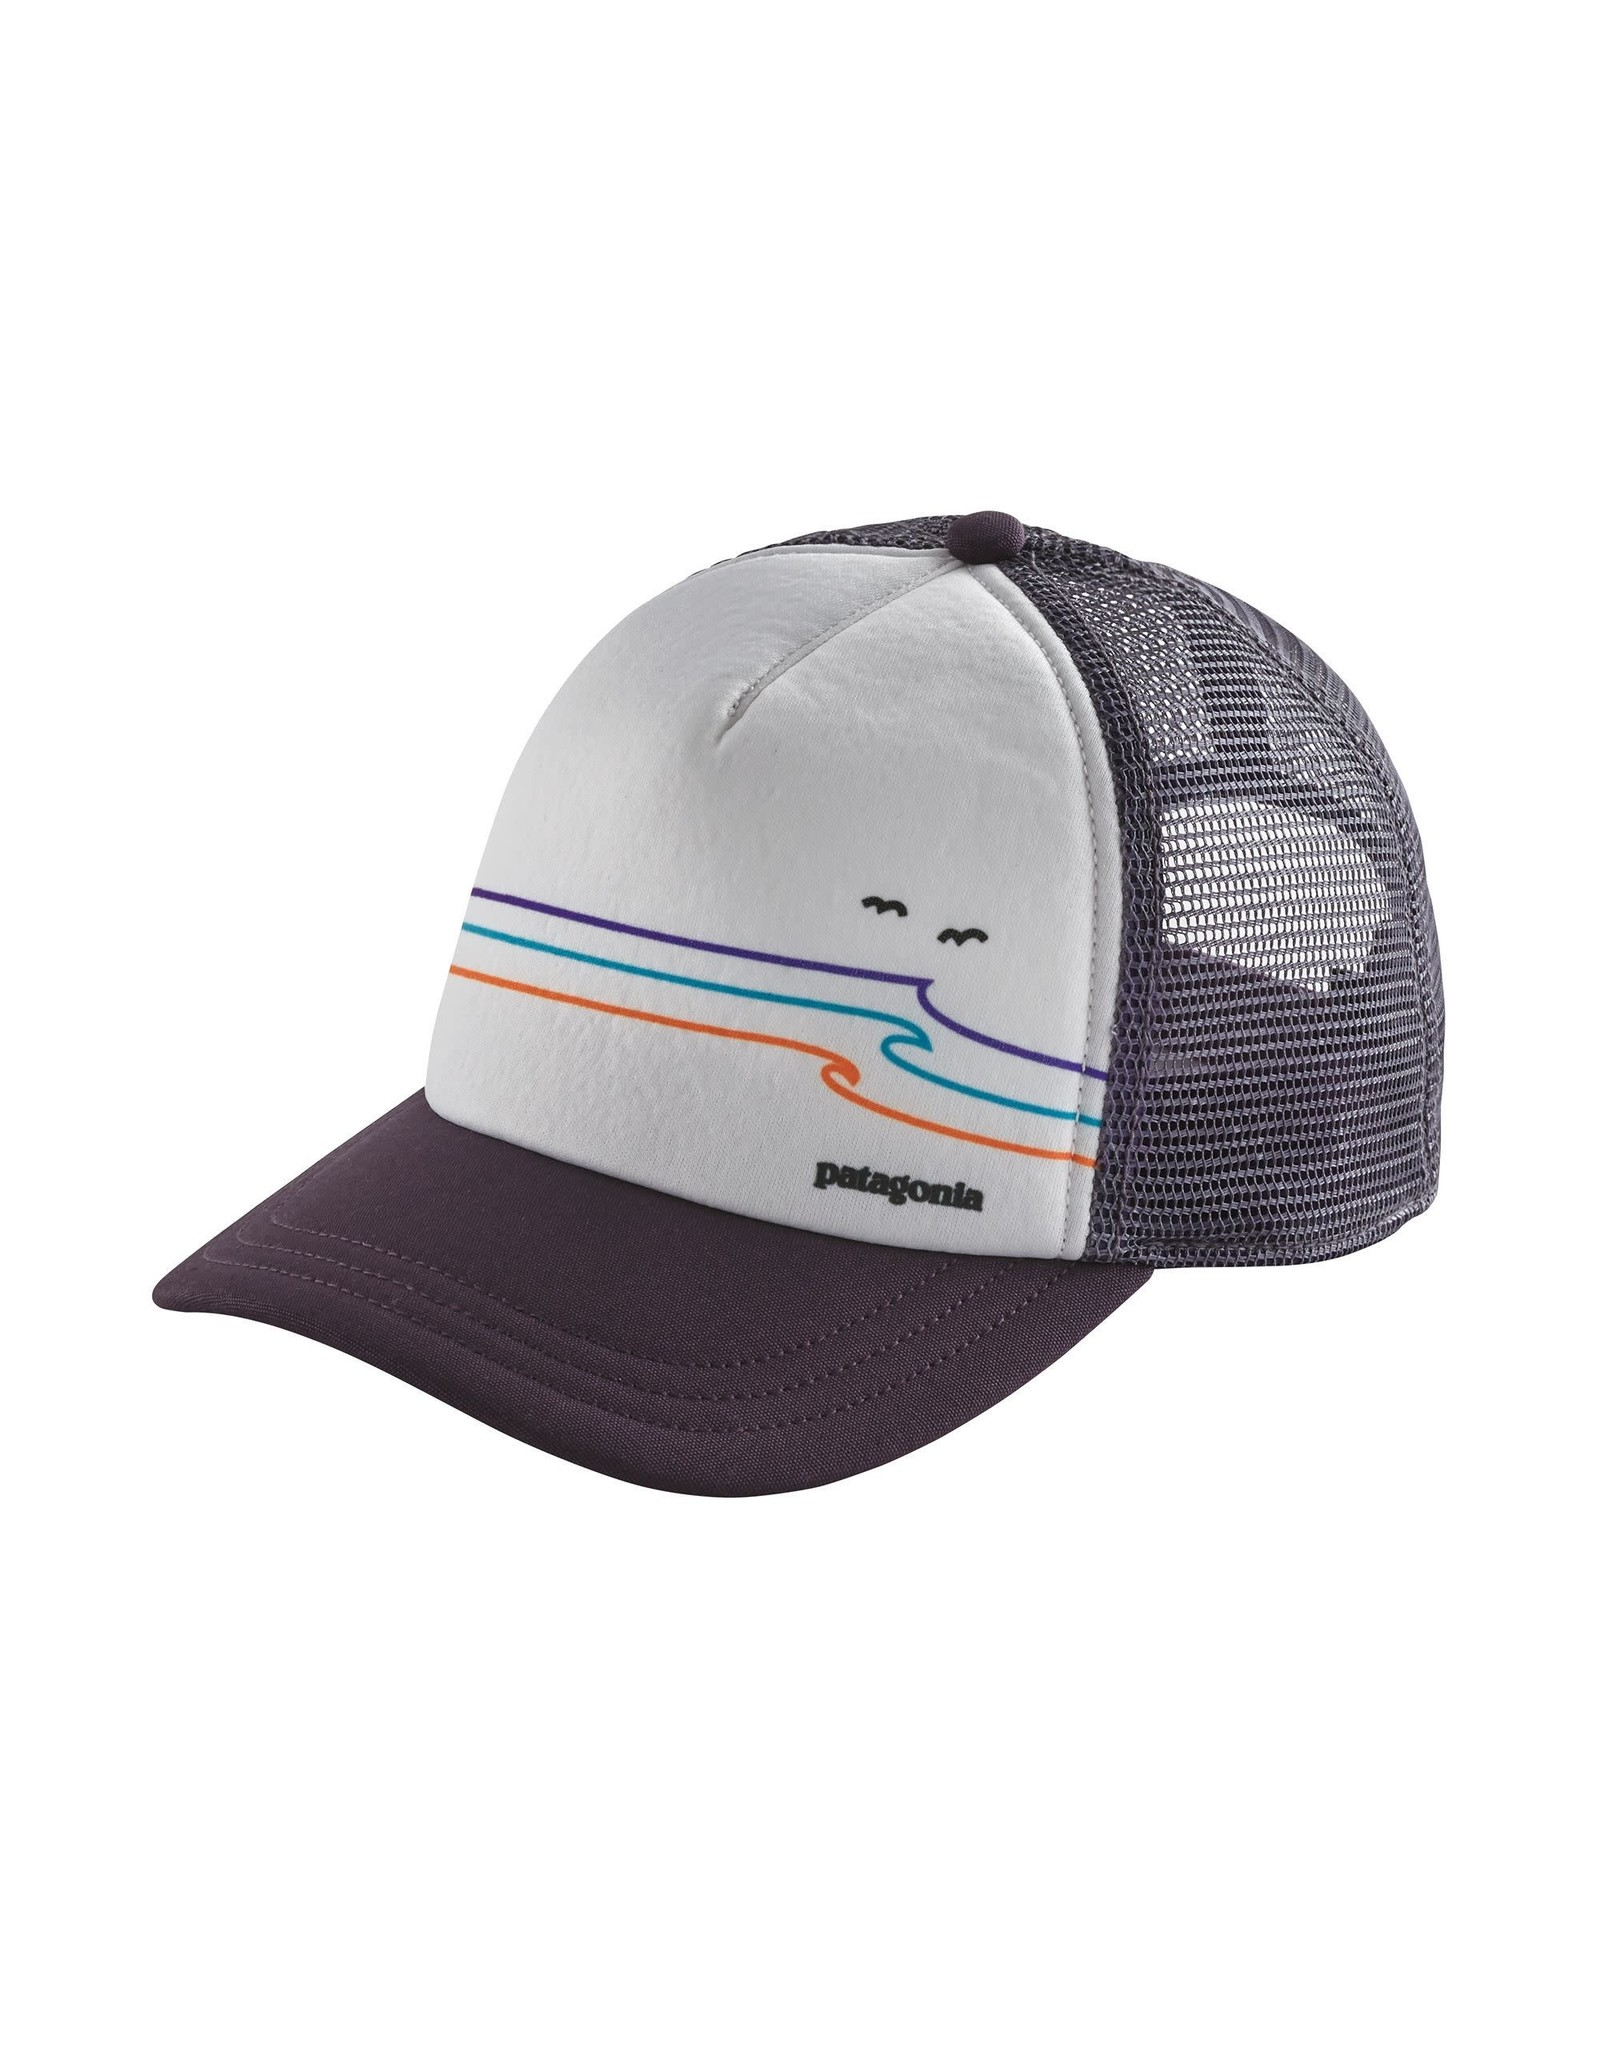 Patagonia Women's Tide Ride Interstate hat Biton Purple